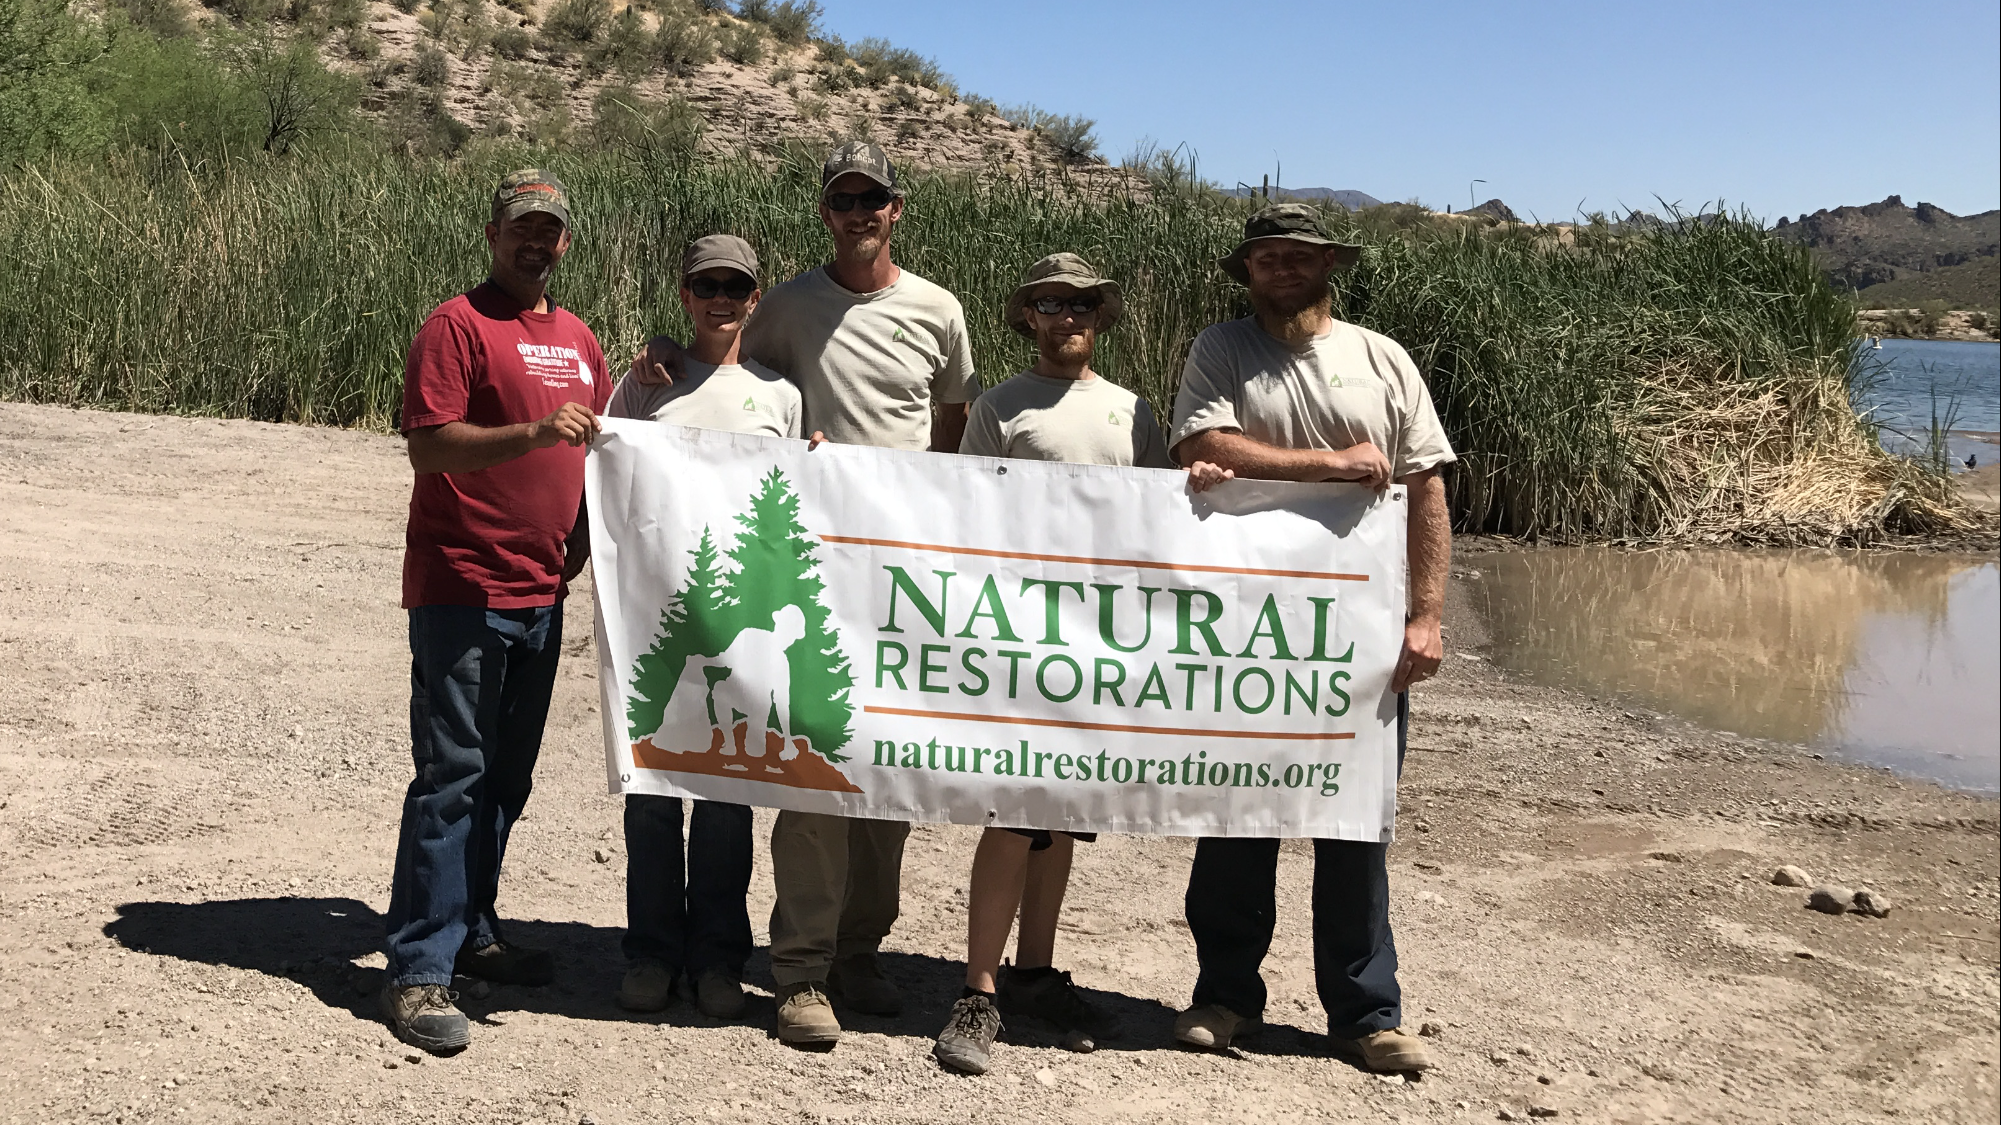 April 2017 Butcher Jones OHV Area Cleanup Project - Our Dedicated Restoration Team removed 7,620 pounds of trash from Butcher Jones OHV Area, including nails from pallet fires illegally burned on roads and trails, OHV & 4X4 parts, clothing, camping trash, broken glass, plastic bags & wrappers, a broken tent, plastic & glass bottles, aluminum cans, mattresses & boxsprings, rolls of carpet & padding, televisions, appliances, a water heater, piles of household tile including a large dump site with Saltillo tile, and lots of scattered trash. We also put out an abandoned fire still burning at one of the coves. Check out these pictures from our project: